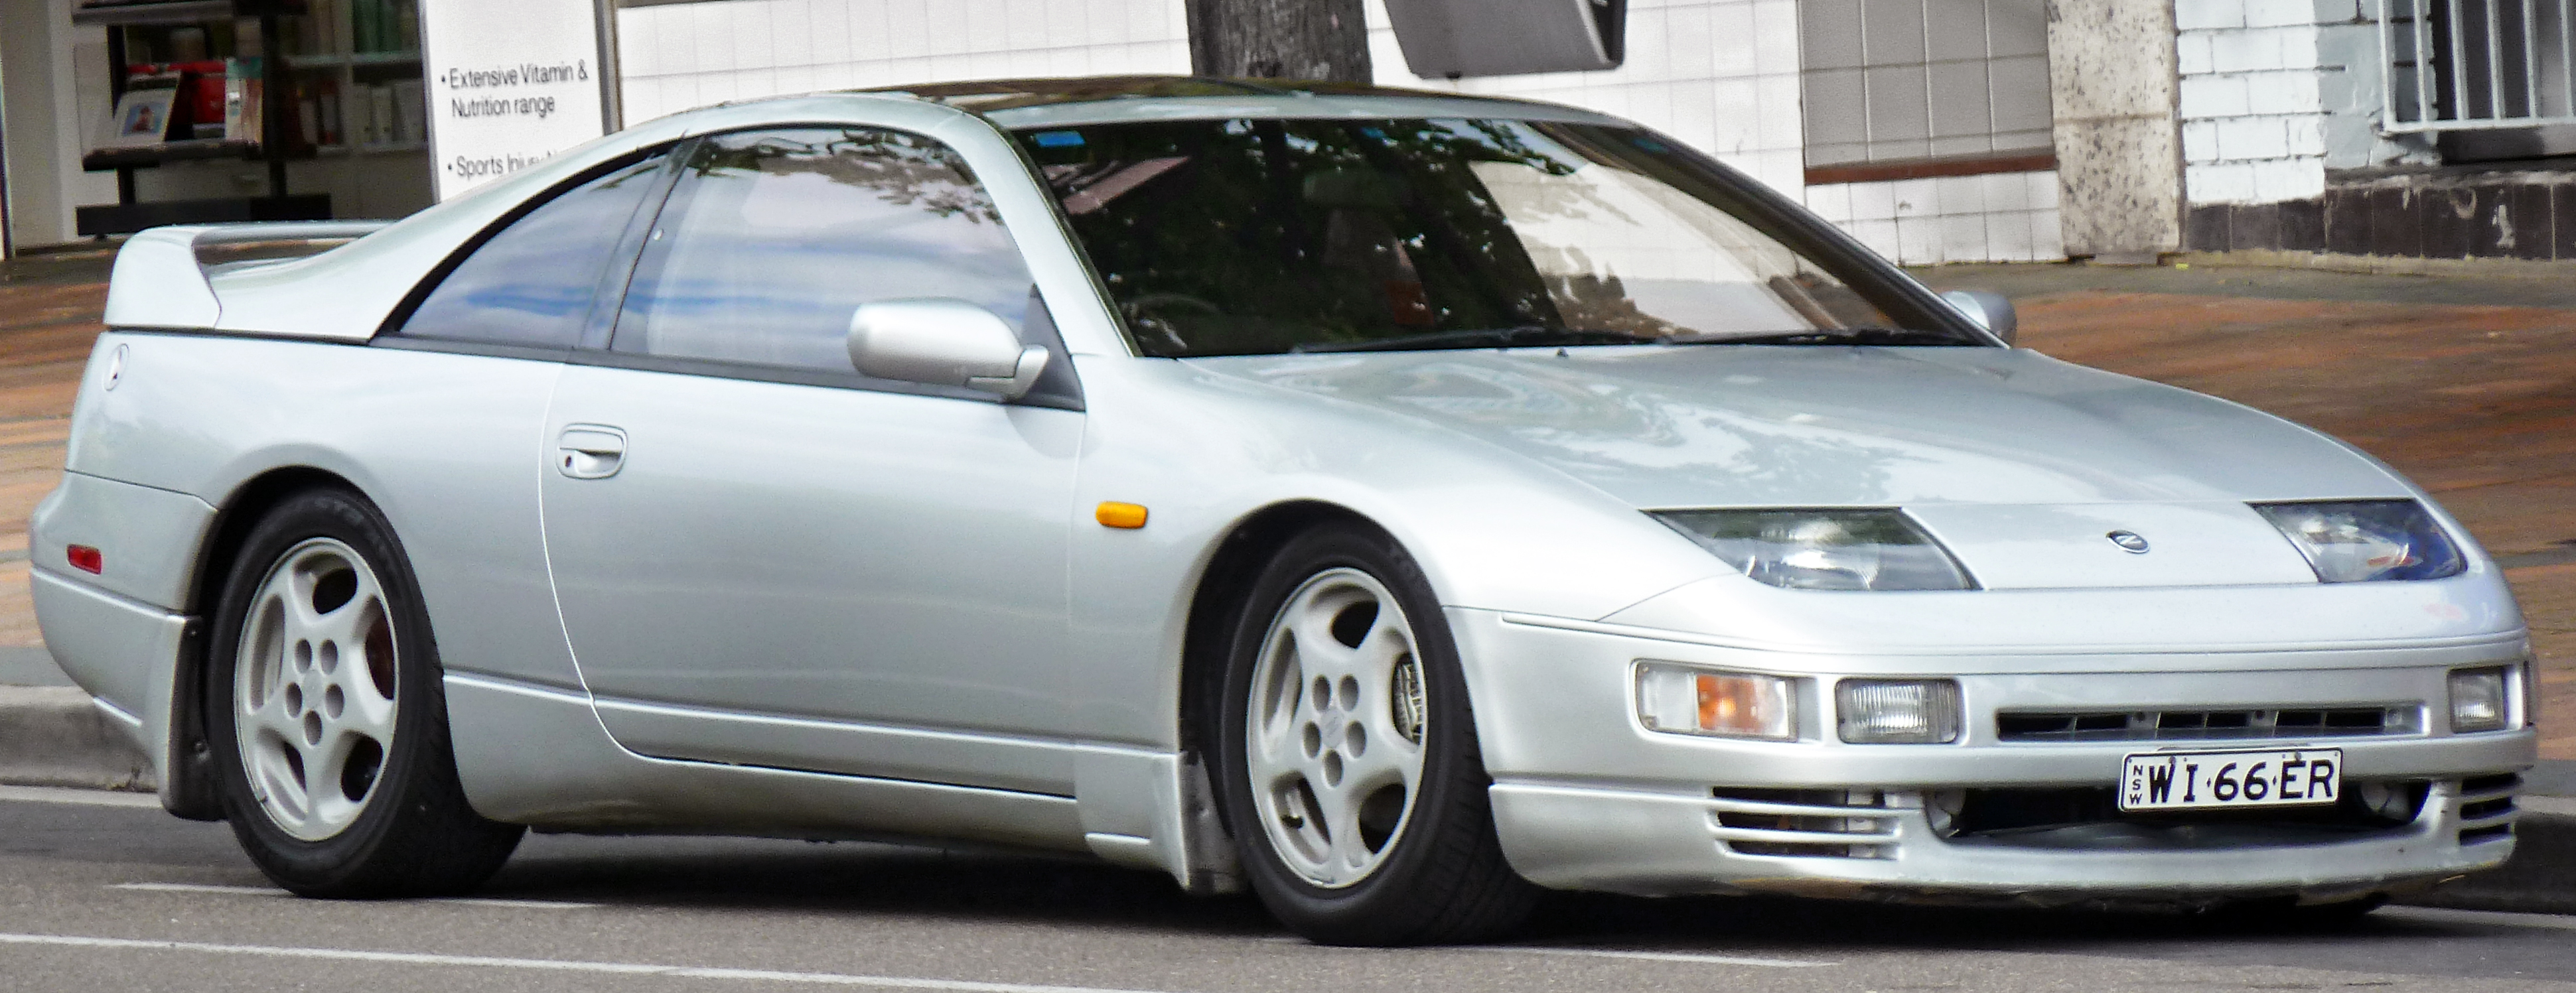 1990_Nissan_300ZX_(Z32)_coupe_(2011-12-0